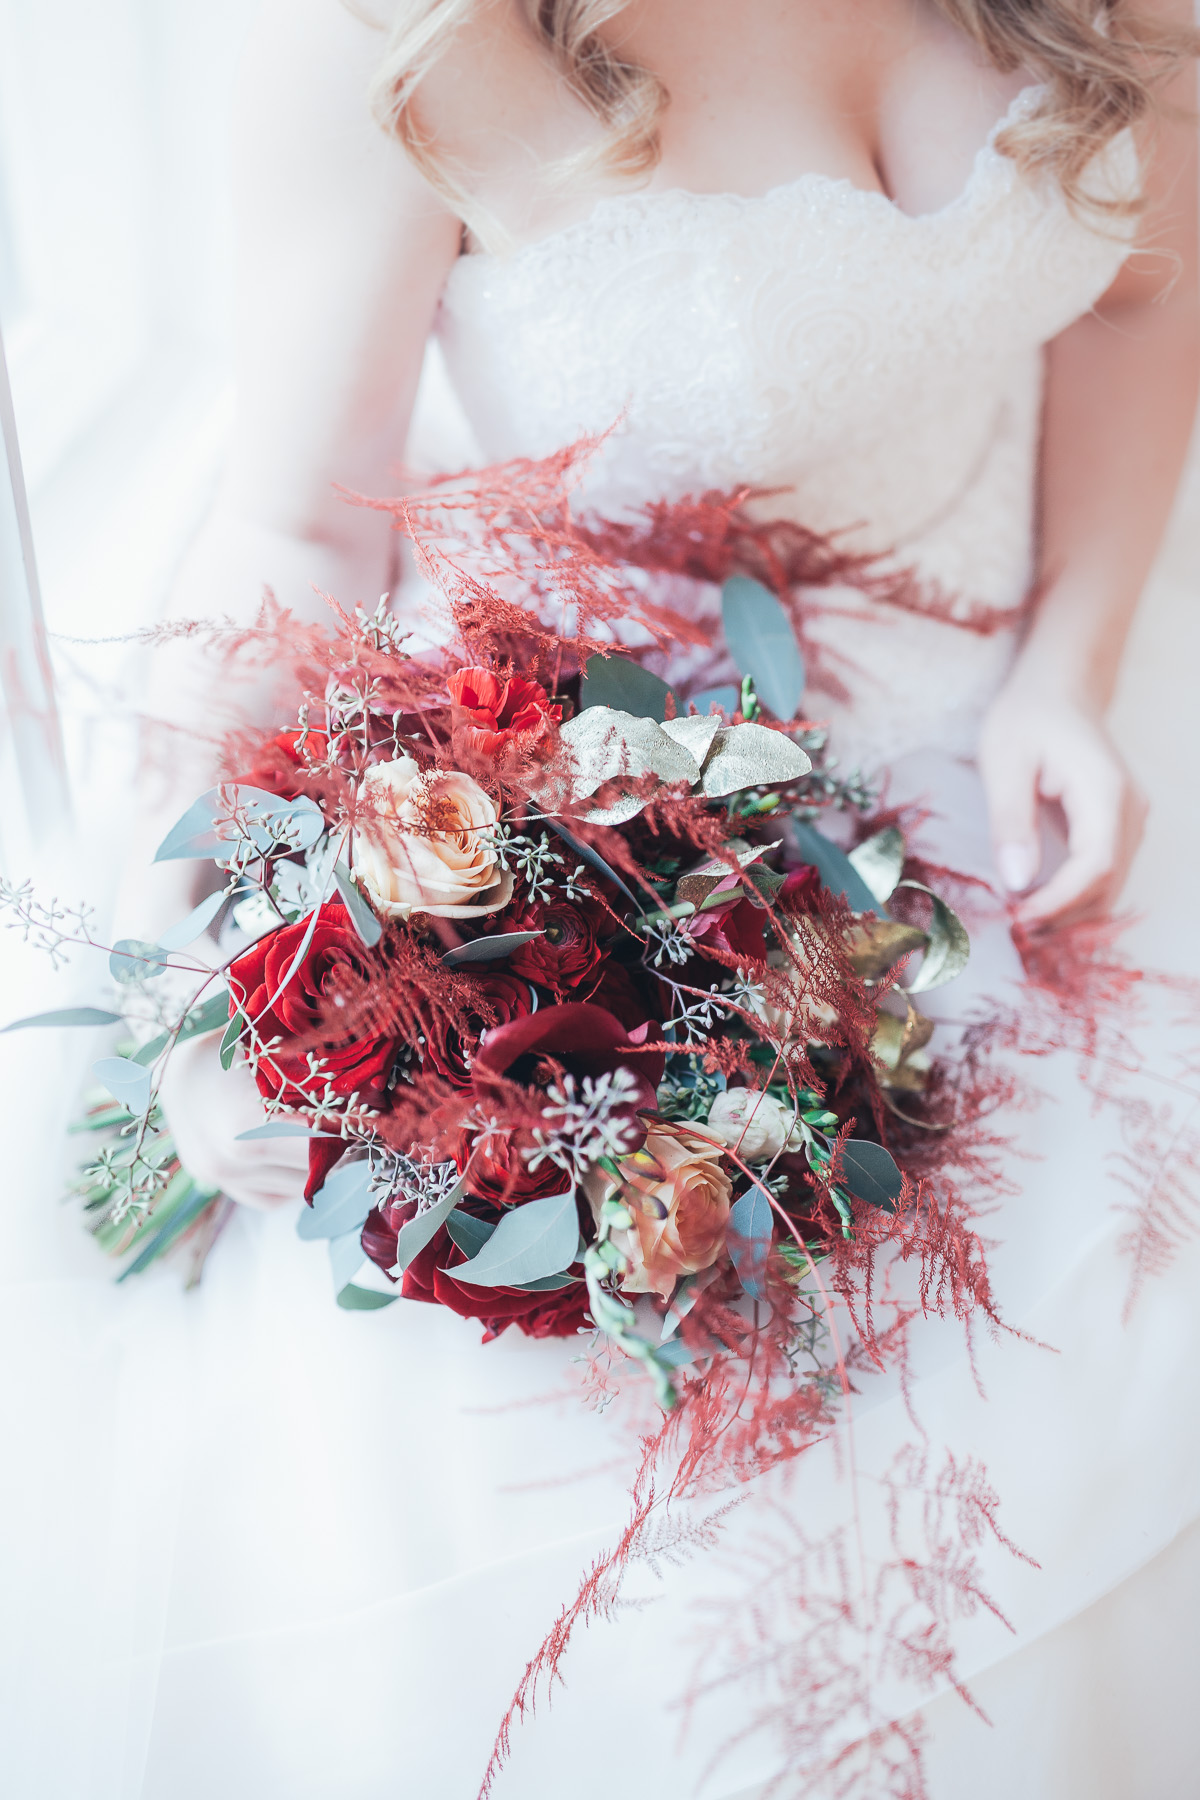 Imperial bridal styled shoot with a horse Metamorphoses by luxury destination wedding planner High Emotion Weddings at the Spanish Riding School Vienna Austria